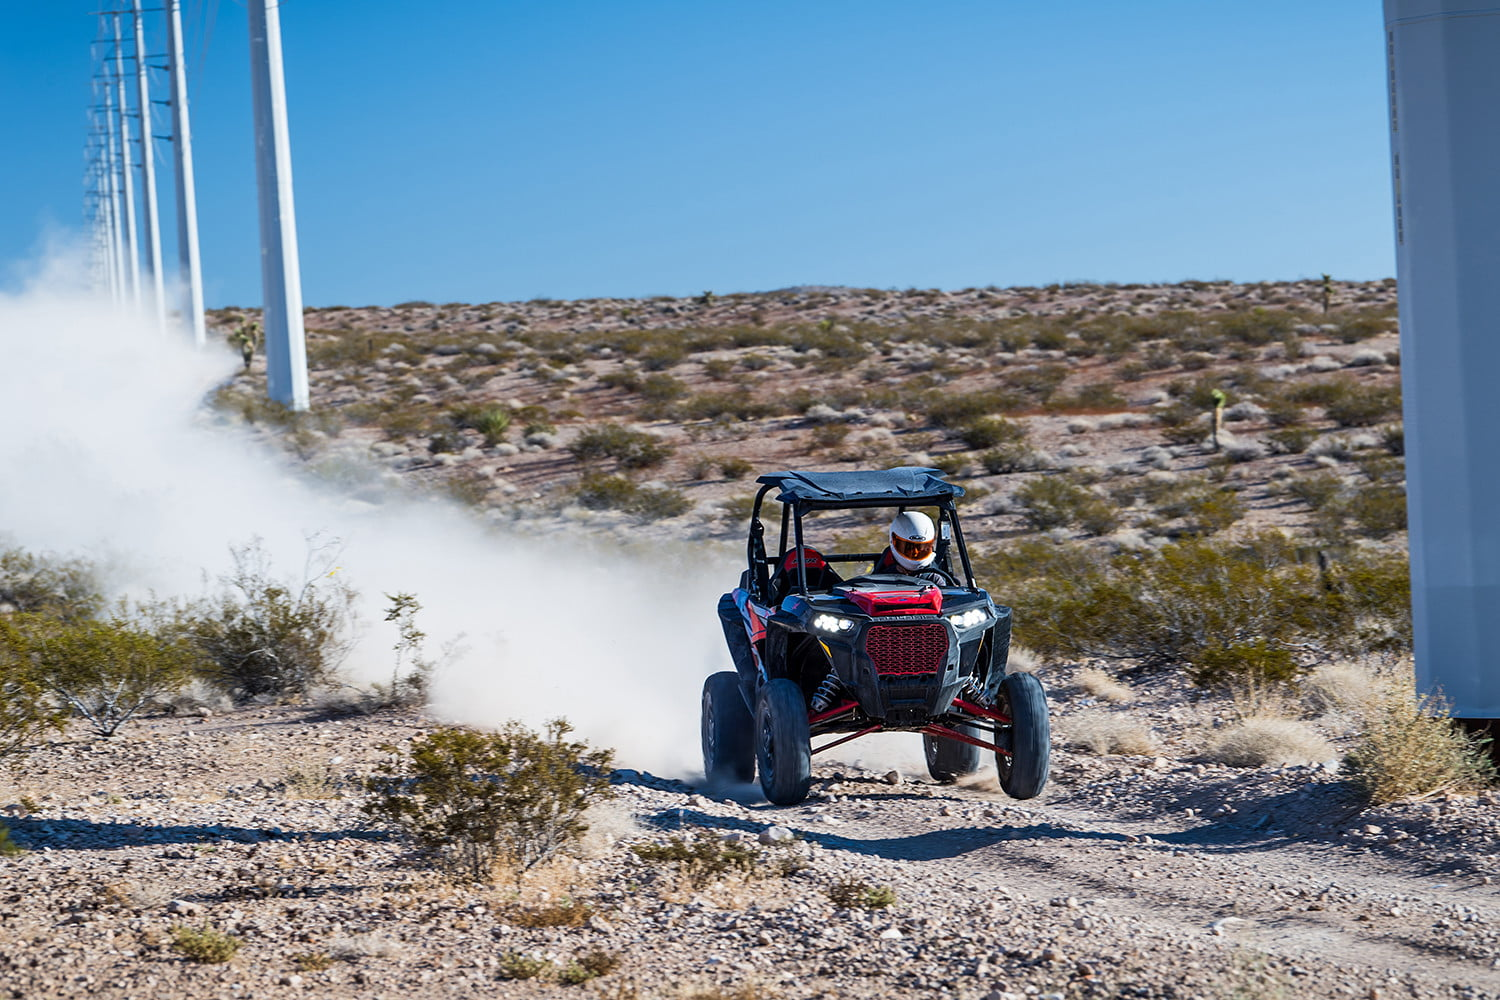 If you haven't driven a UTV, you're missing the most fun you can have off-road